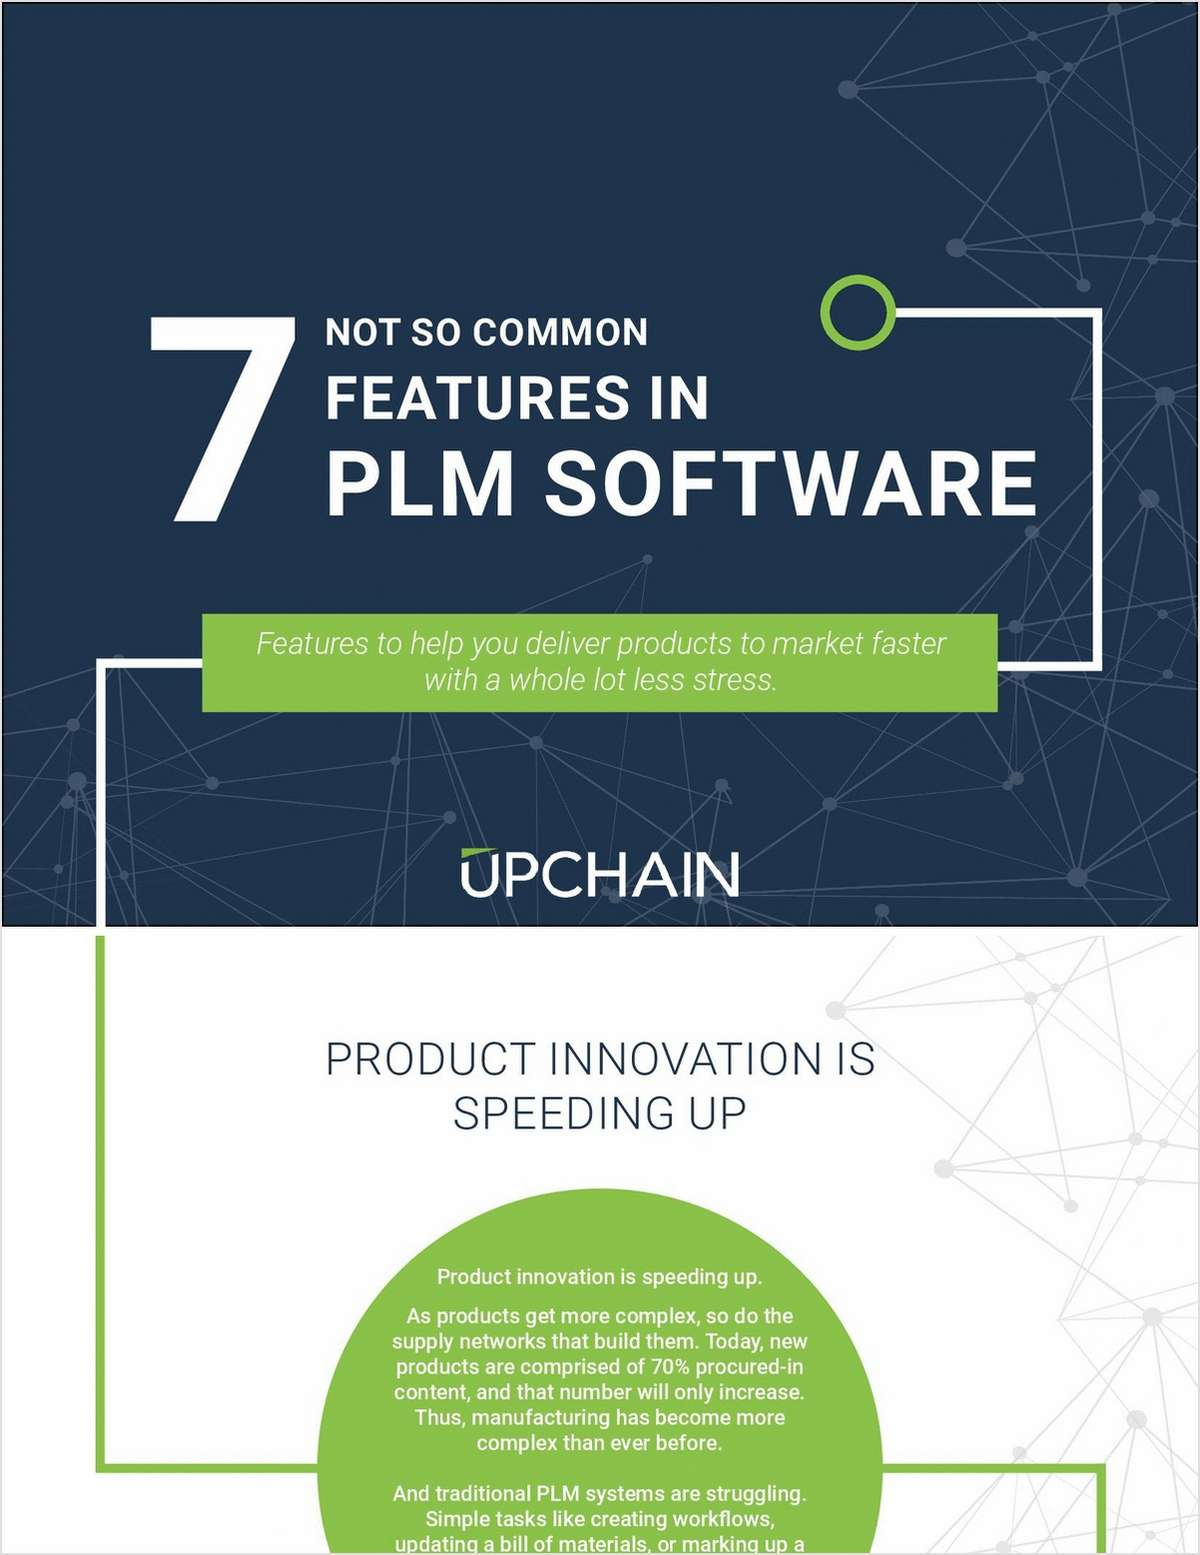 7 Not So Common Features in PLM Software